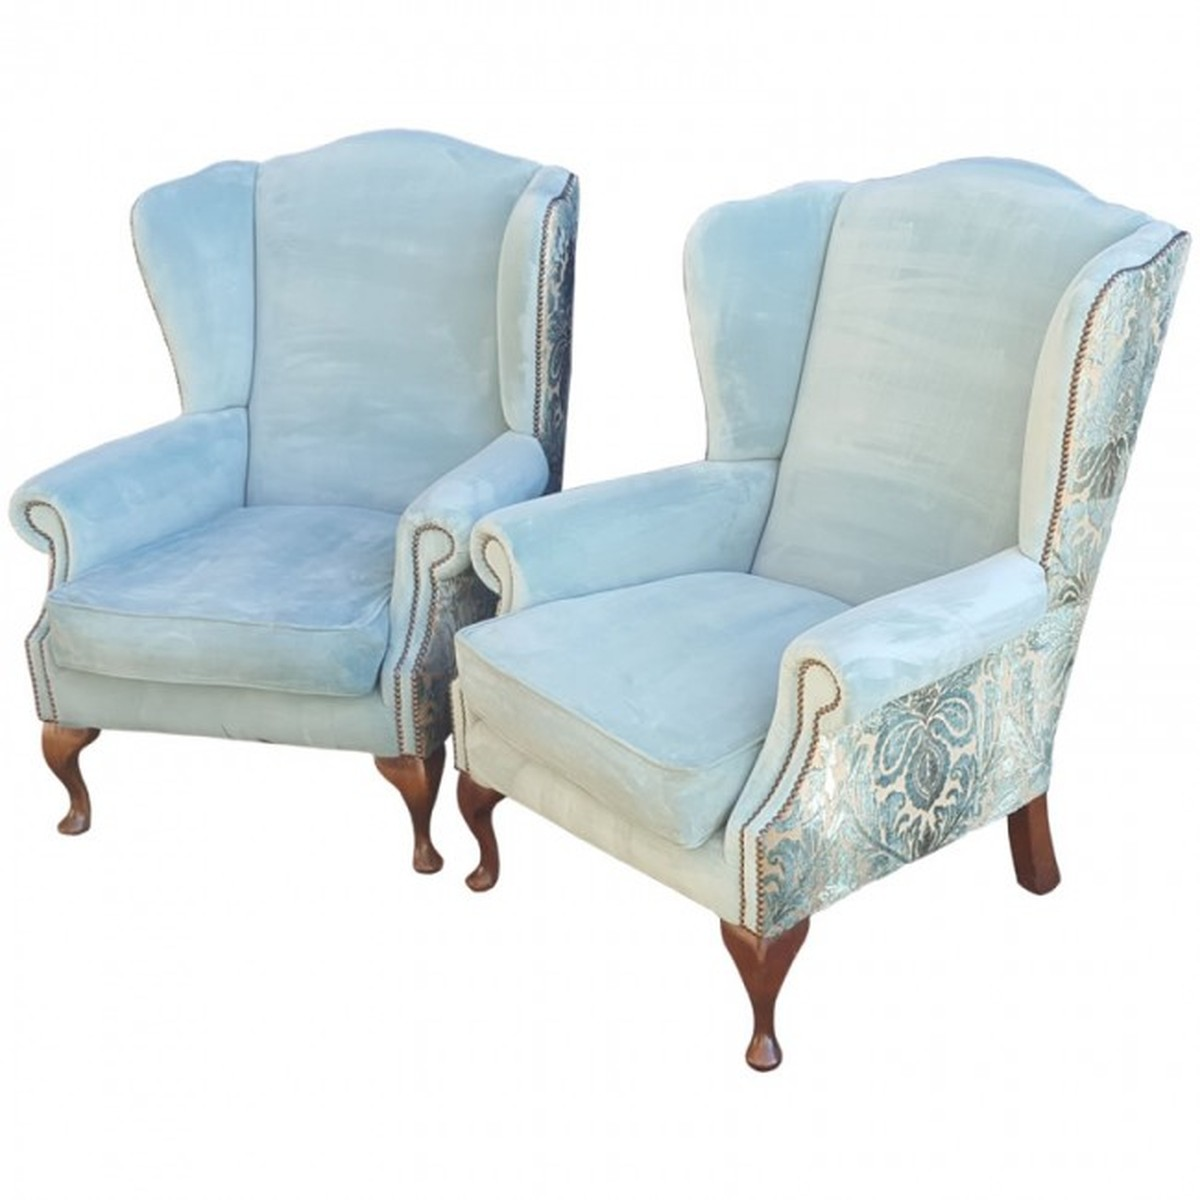 Secondhand Hotel Furniture Lounge and Bar Luxury Pair  : luxury pair of wingback armchairs code mf2565 856 from secondhand-hotel-furniture.co.uk size 1200 x 1200 jpeg 115kB